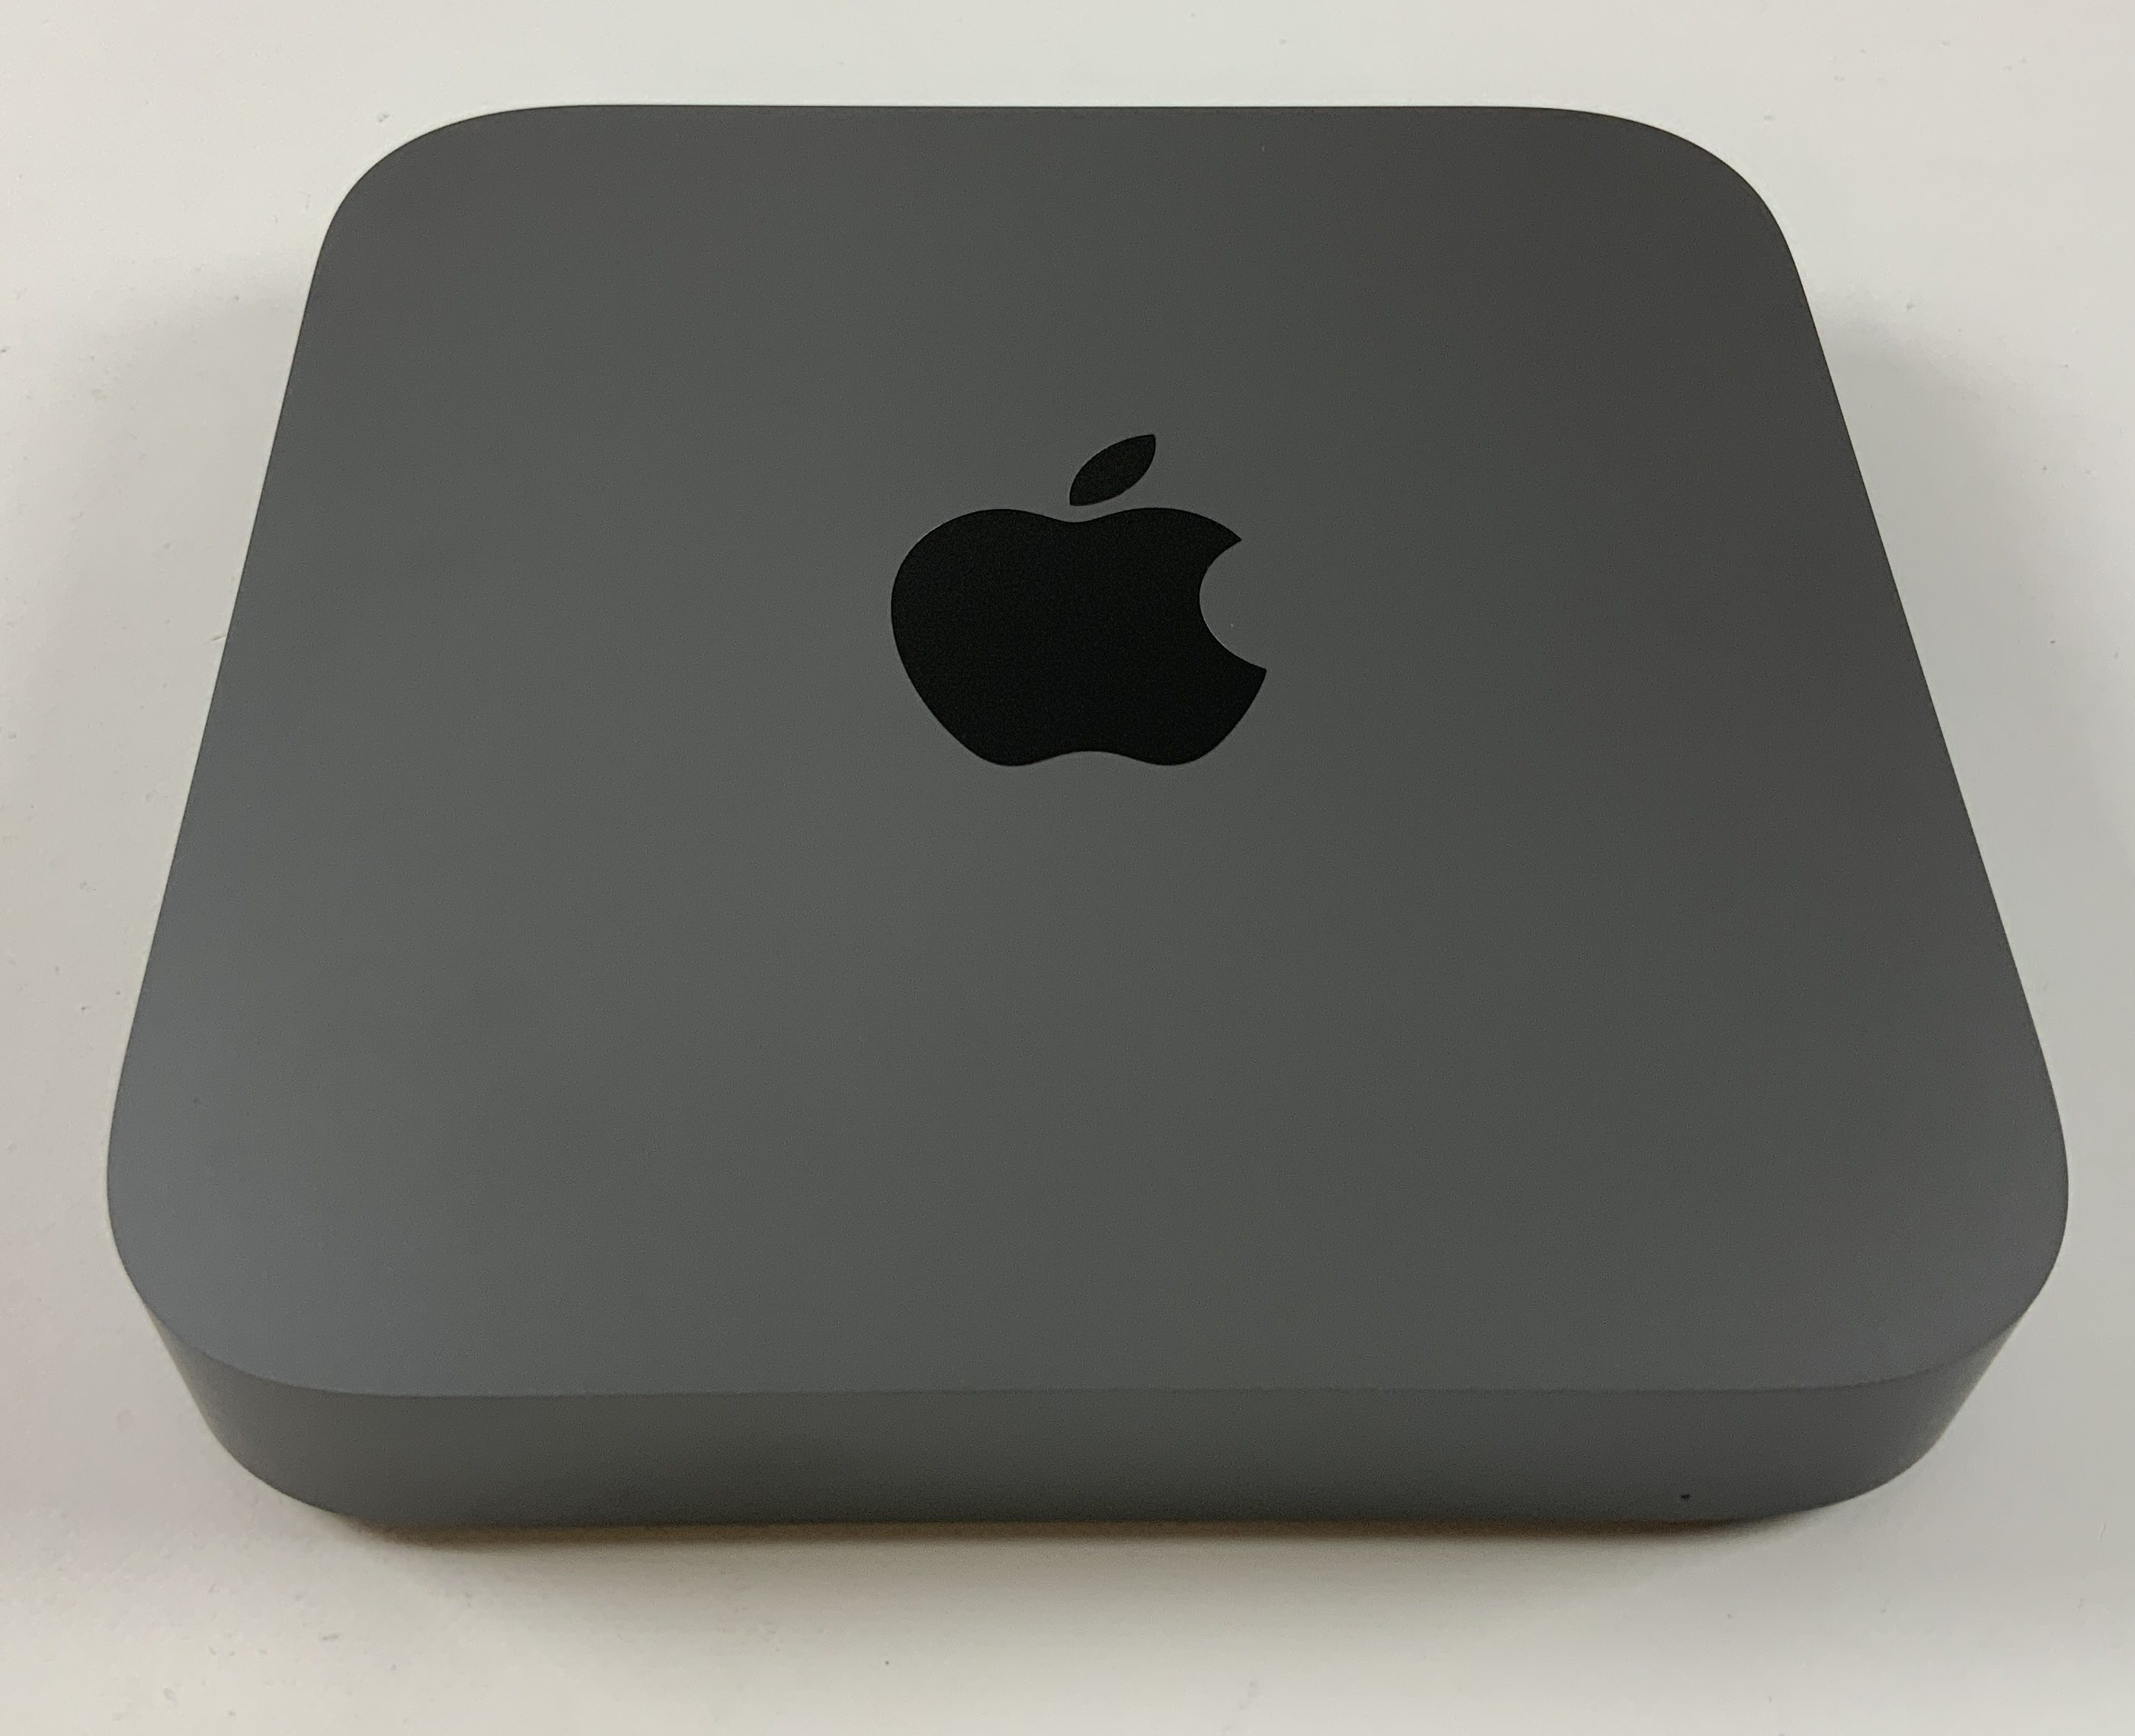 Mac Mini Late 2018 (Intel Quad-Core i3 3.6 GHz 64 GB RAM 128 GB SSD), Intel Quad-Core i3 3.6 GHz, 64 GB RAM, 128 GB SSD, obraz 1